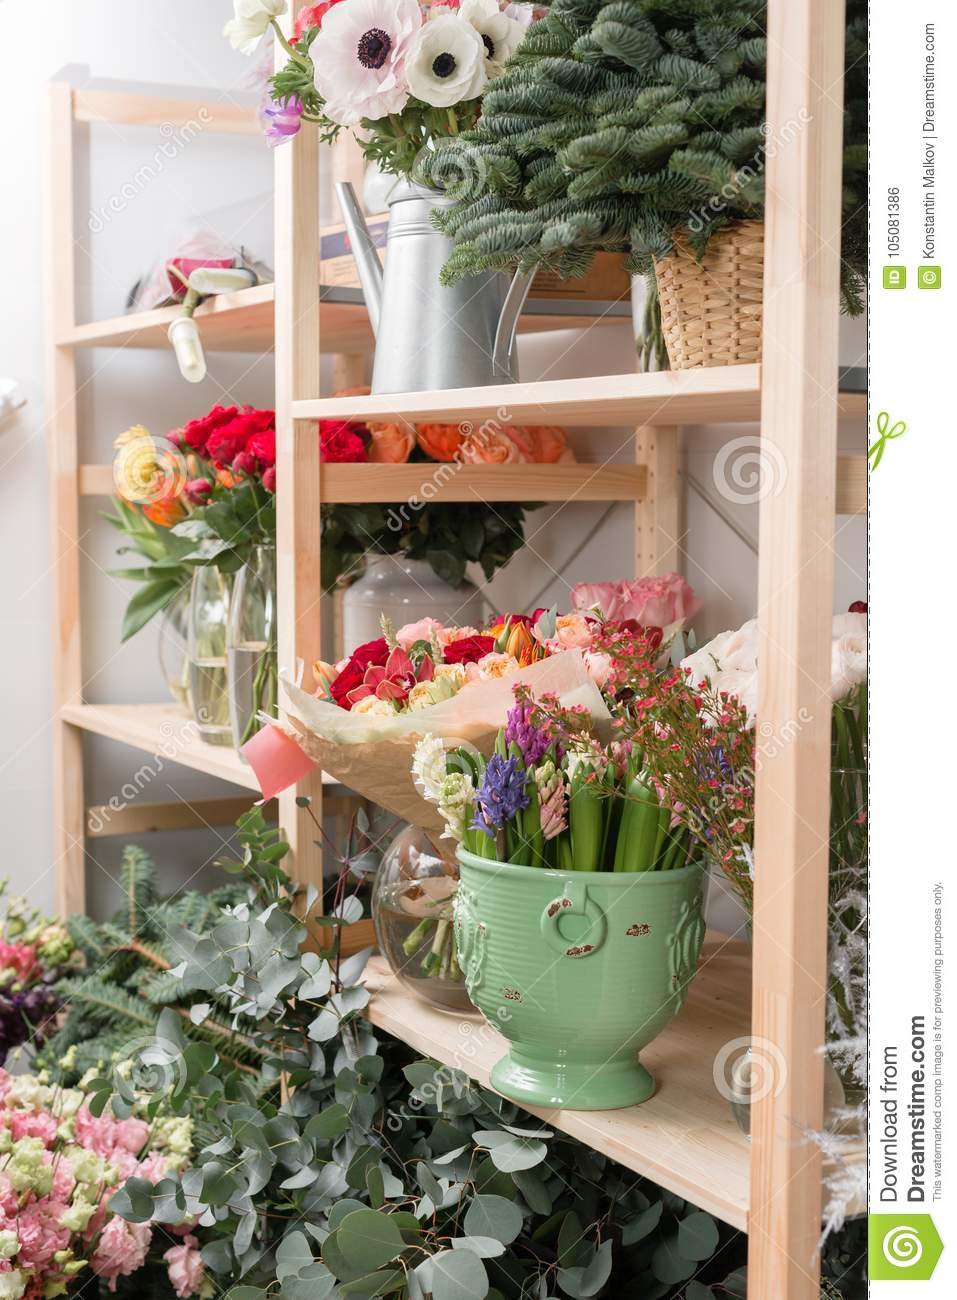 Different varieties fresh spring flowers in refrigerator for royalty free stock photo download different varieties fresh spring flowers in refrigerator for flowers mightylinksfo